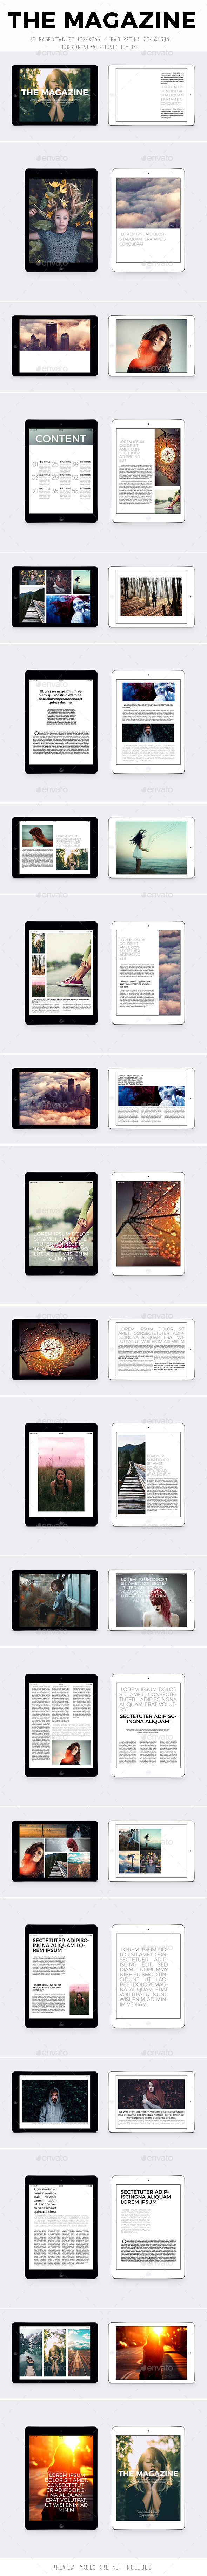 Ipad&Tablet The Magazine - Digital Magazines ePublishing